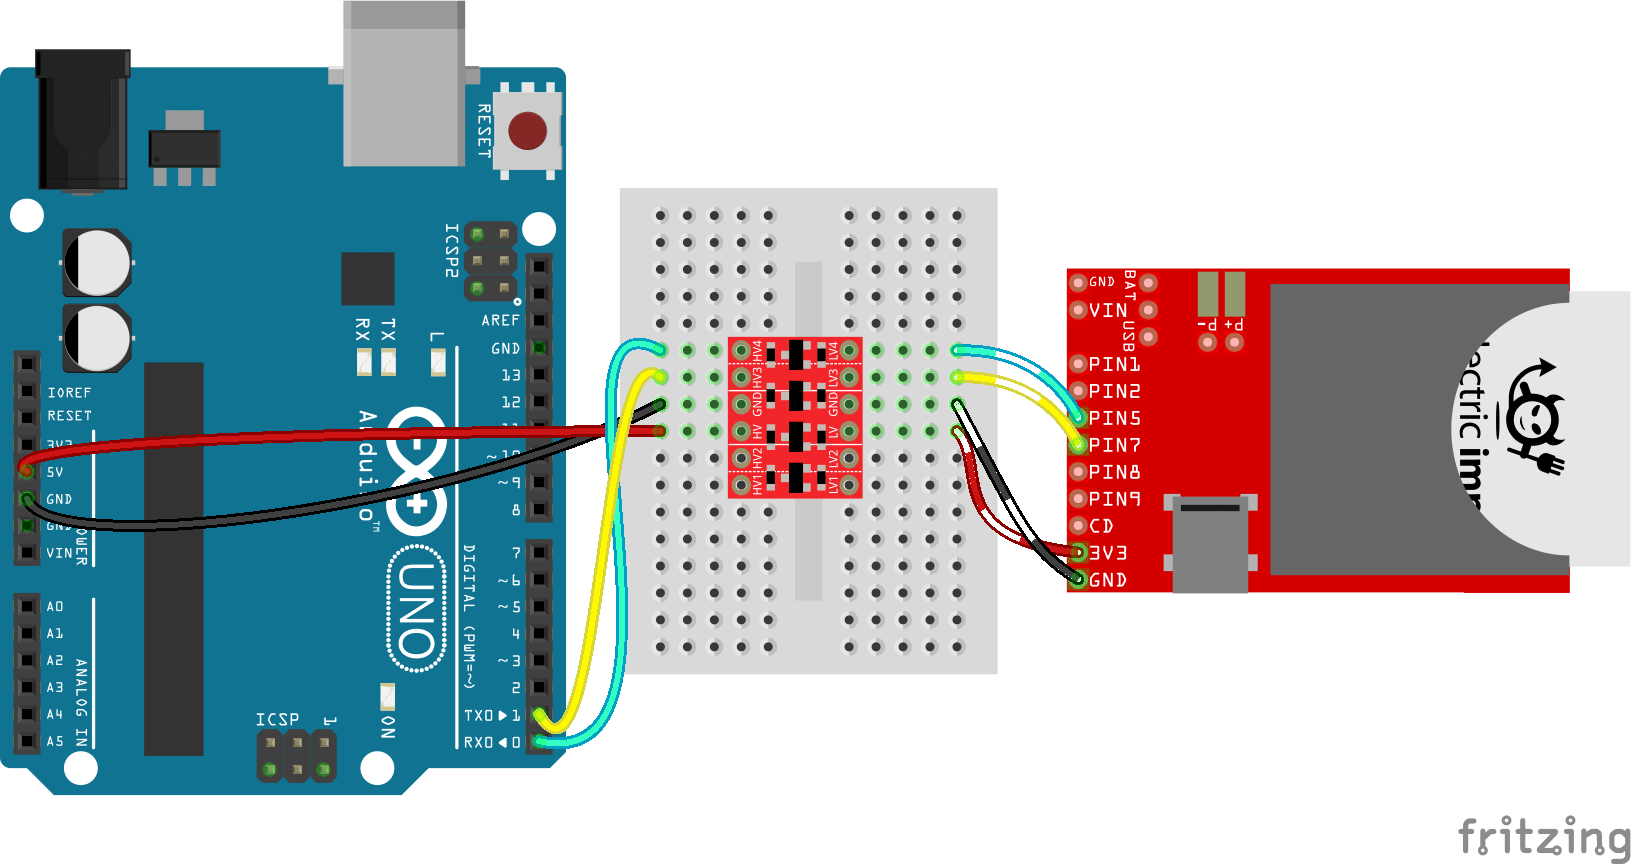 wiring diagram explained switch bi directional logic level converter hookup guide learn sparkfun com arduino to electric imp serial via bd llc